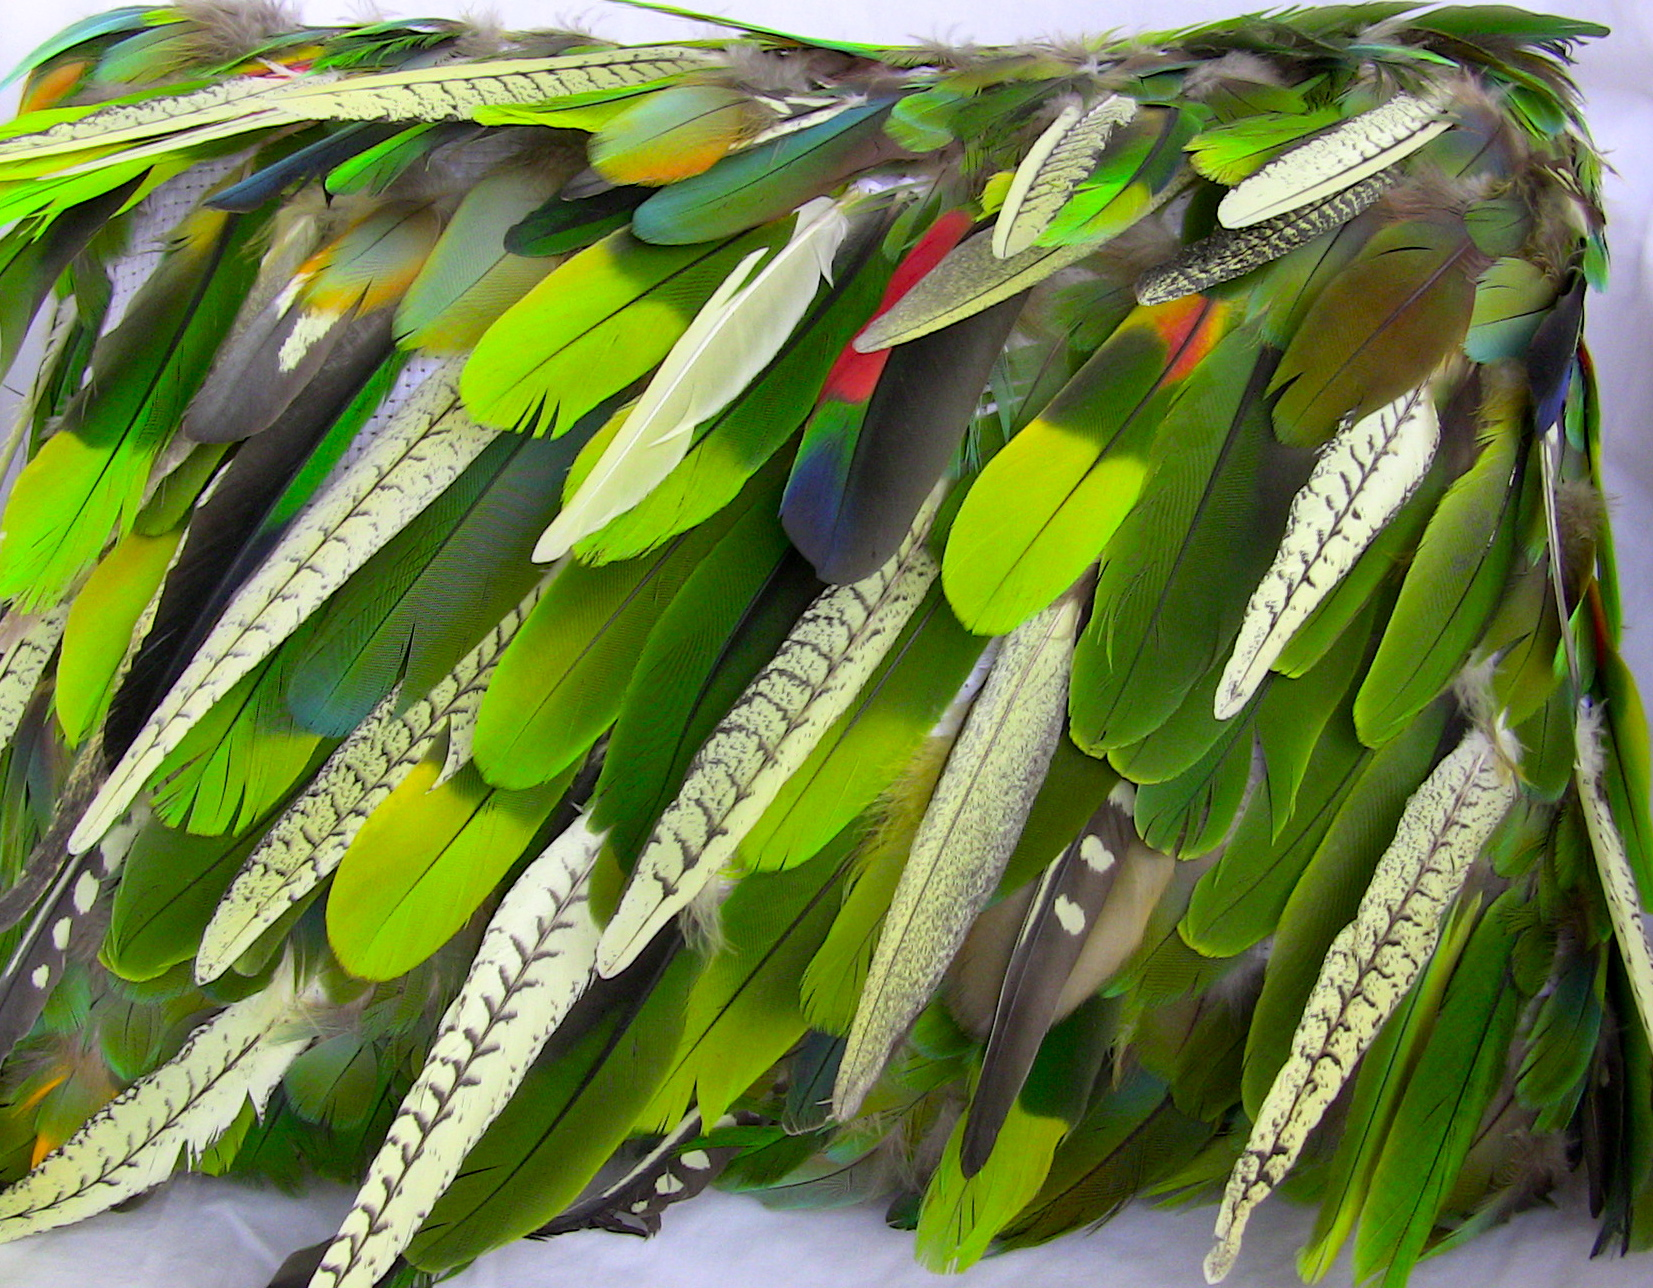 Parrot feathers - photo#22